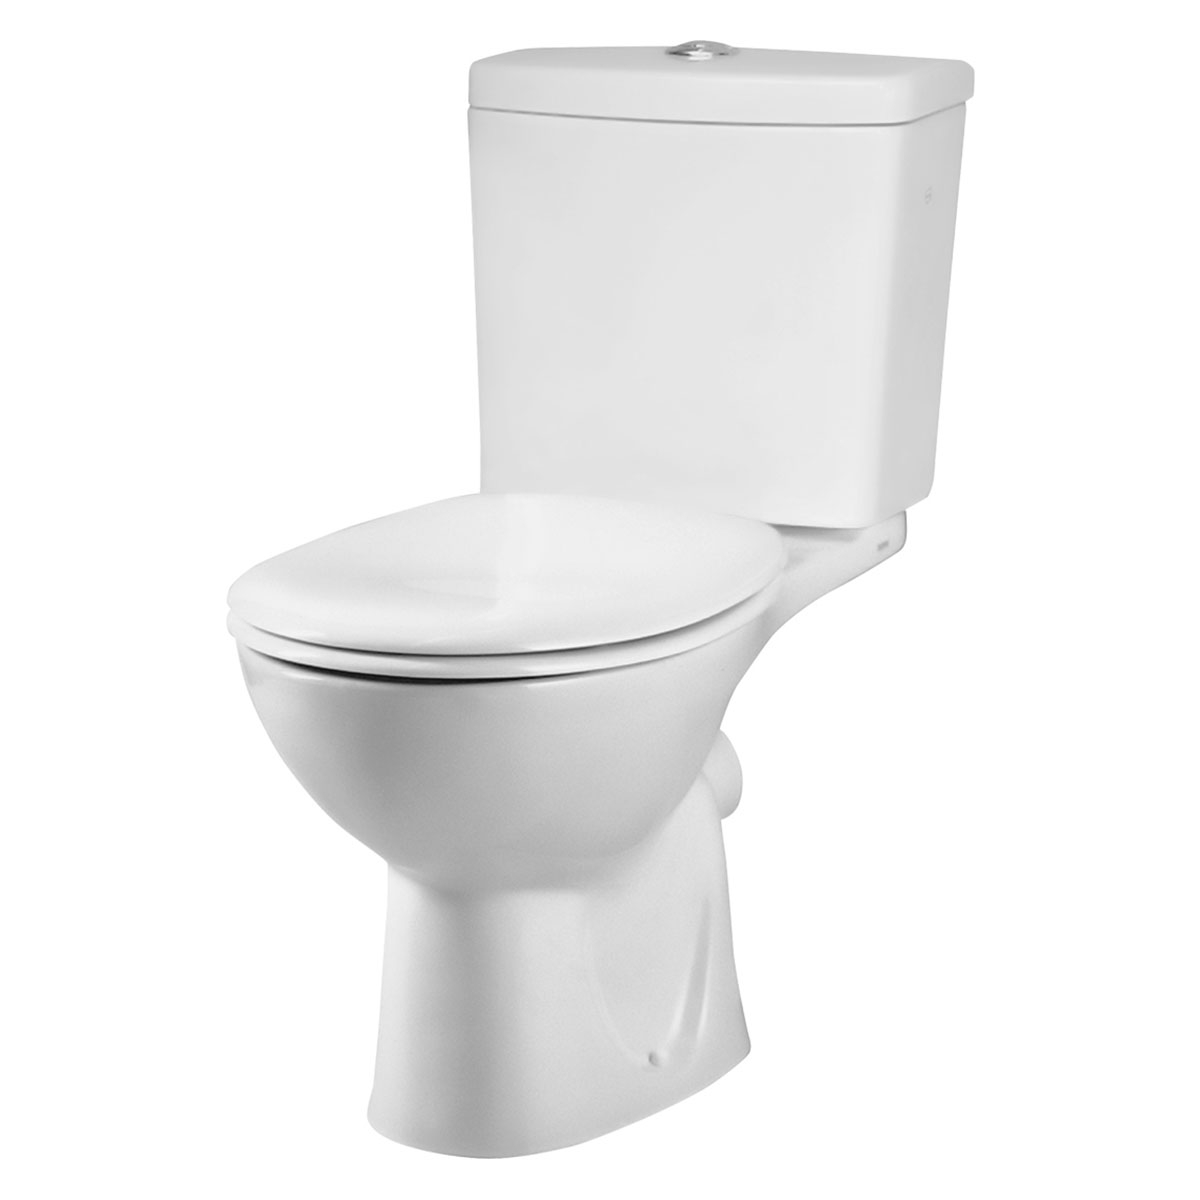 VitrA Layton Cloakroom Suite Close Coupled Toilet 2 Tap Hole Basin-1